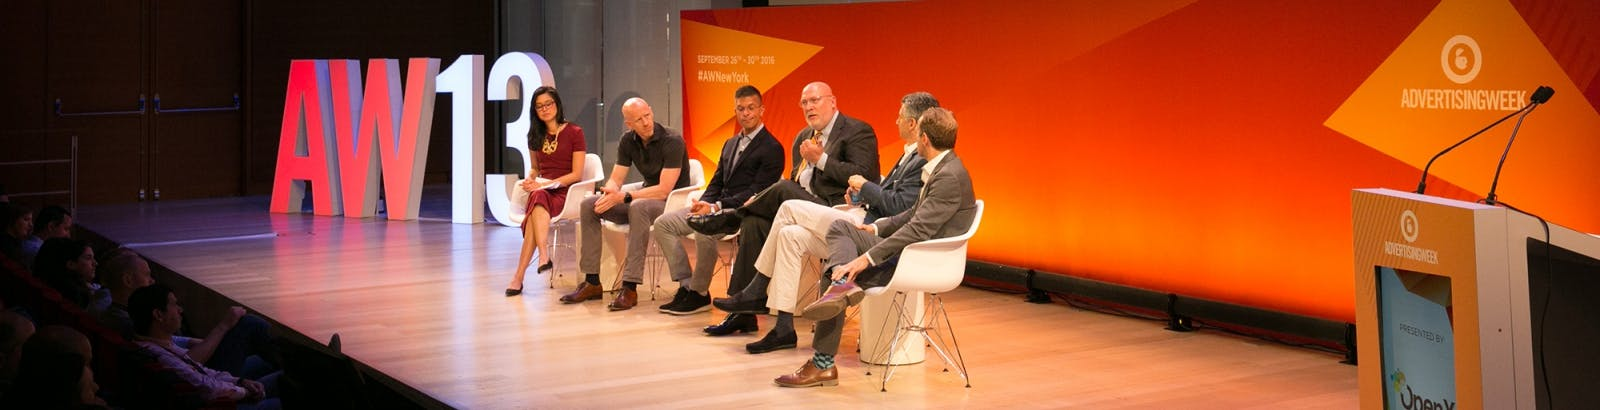 2016 09 27 hero - Advertising Week New York Day 1: Mobile and the Future of Programmatic